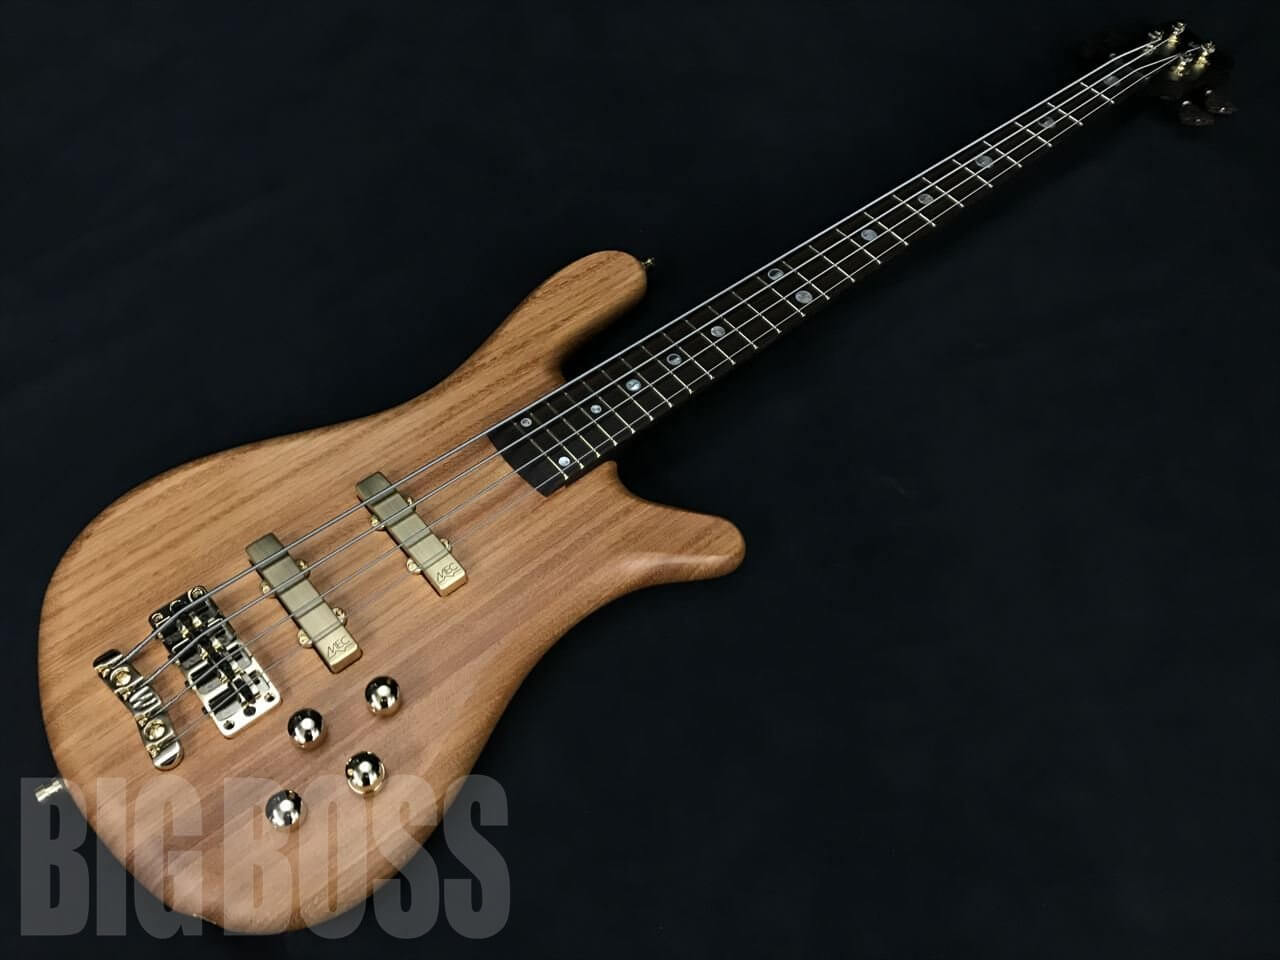 【即納可能】Warwick(ワーウィック) Custom Shop Streamer Stage II 4 (Natural Oil Finish) 駅前店